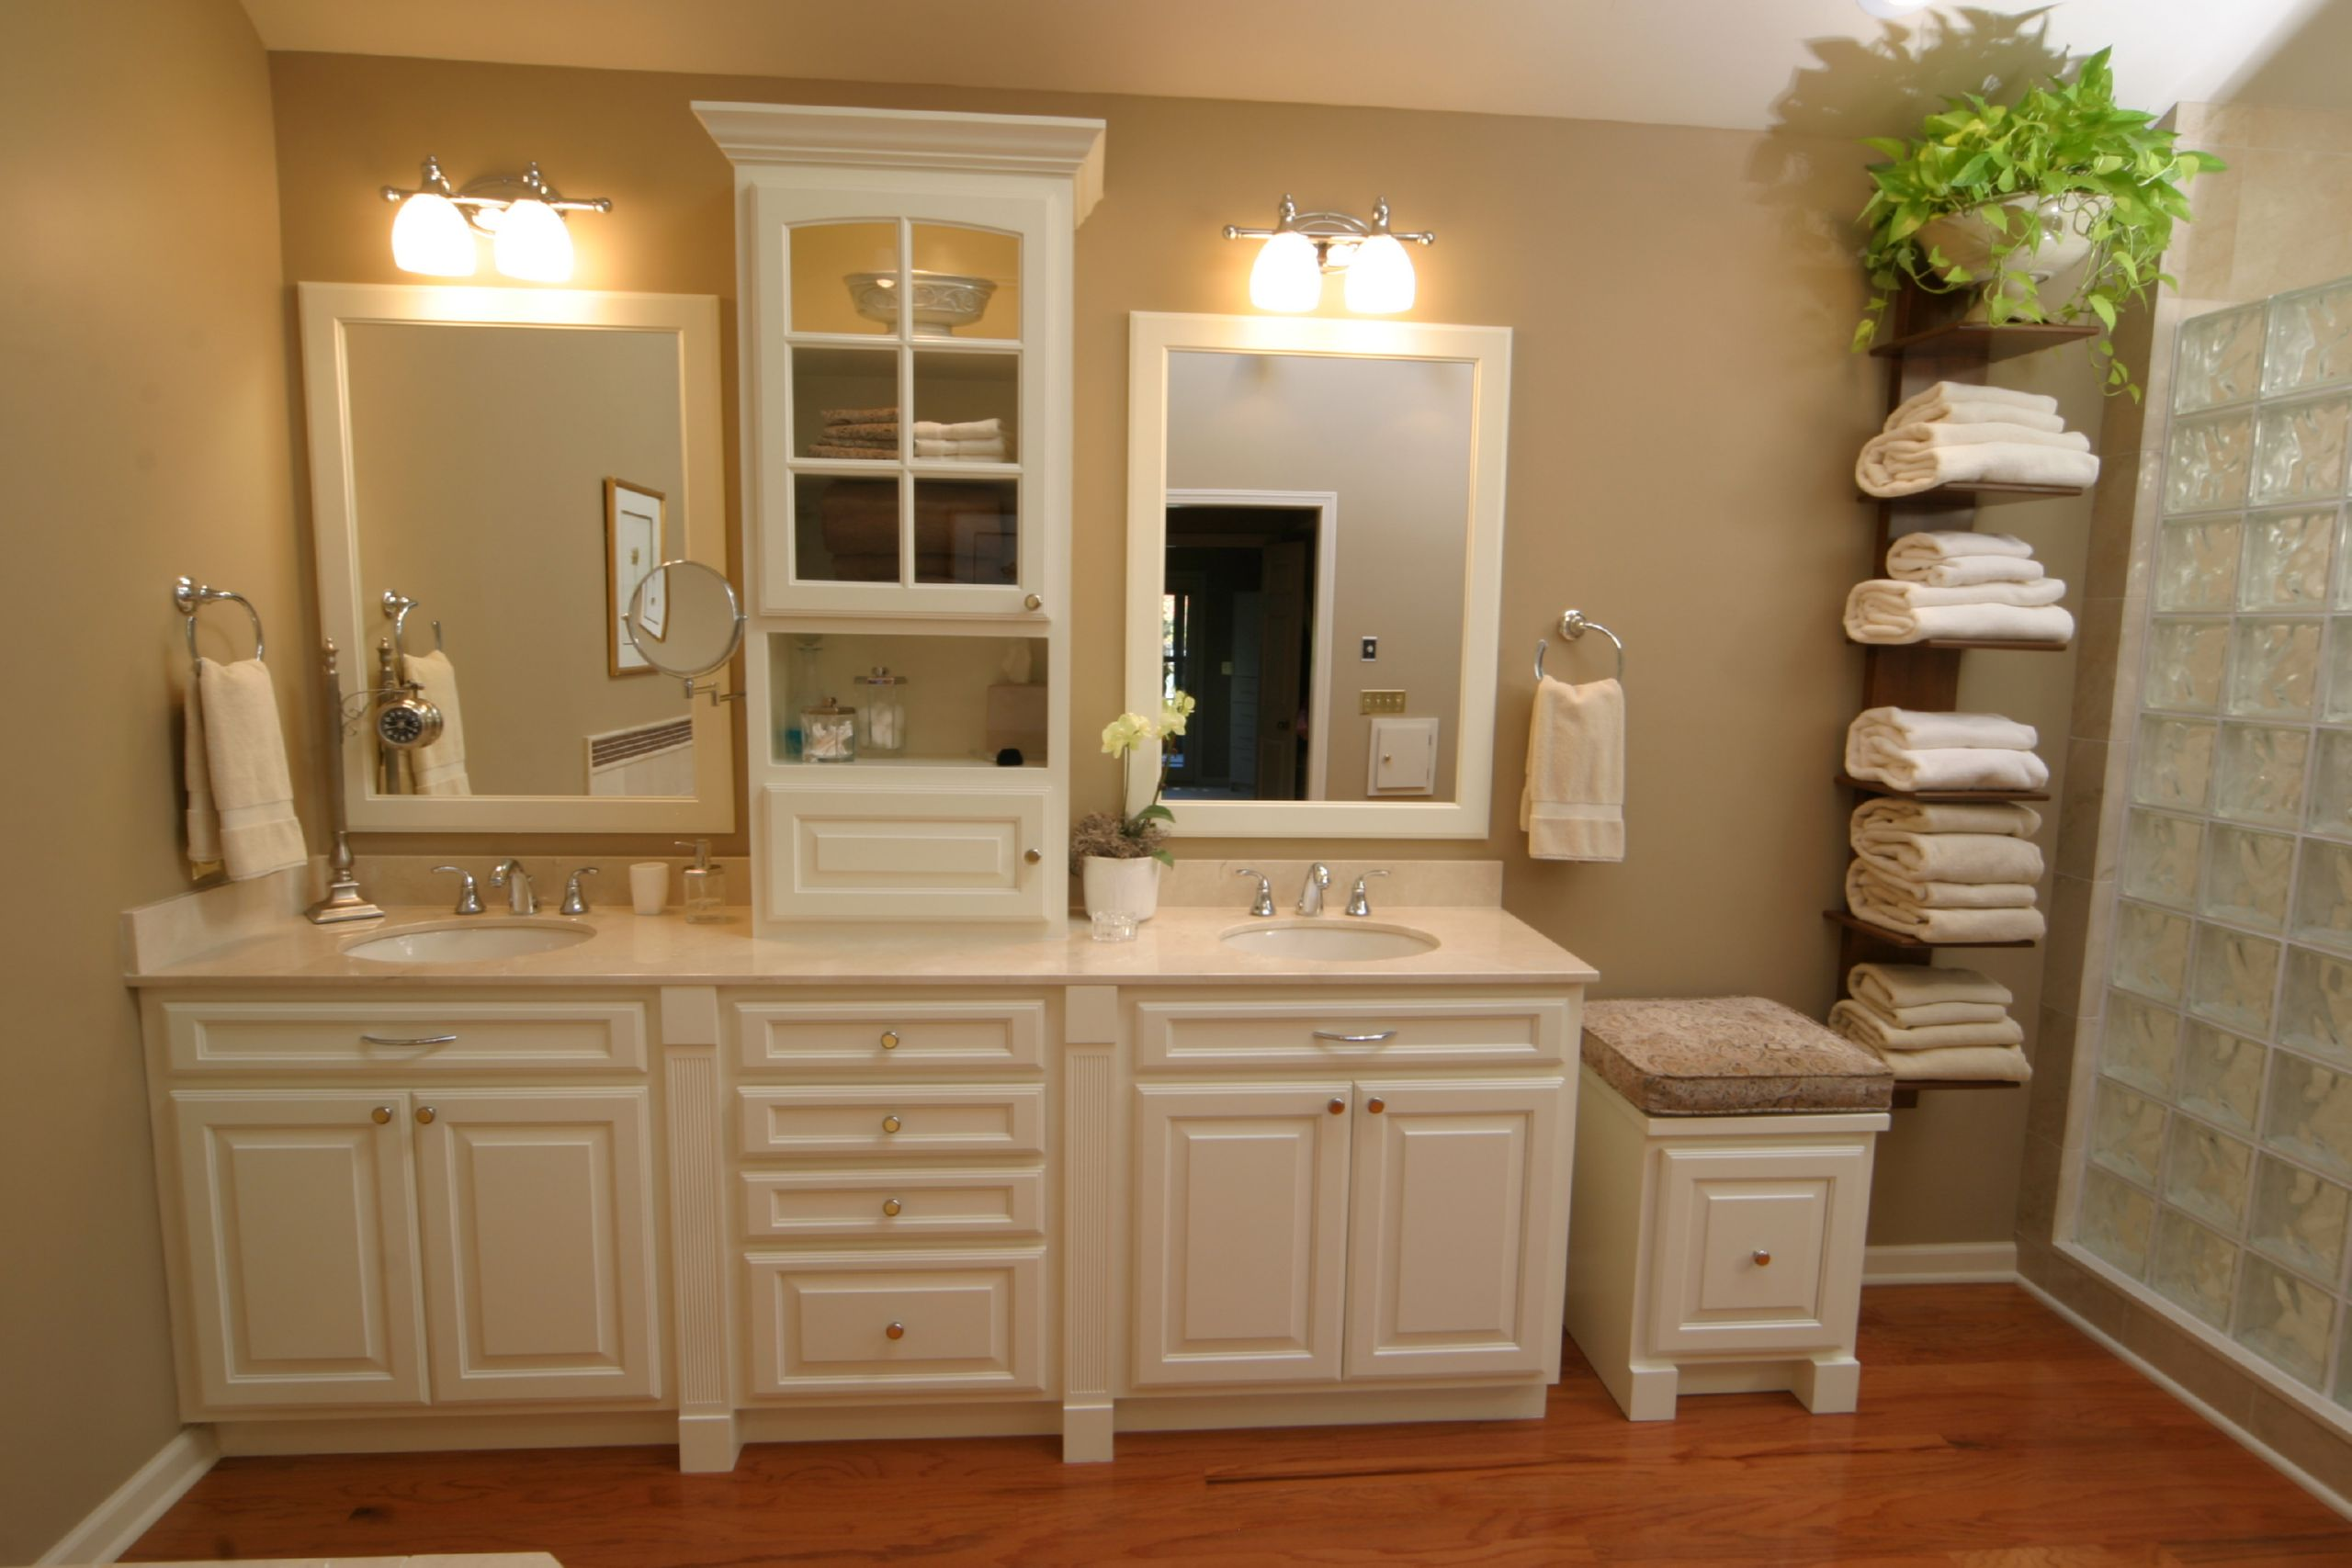 Bathroom Remodeling Tips NJW Construction - Bathroom renovations costs